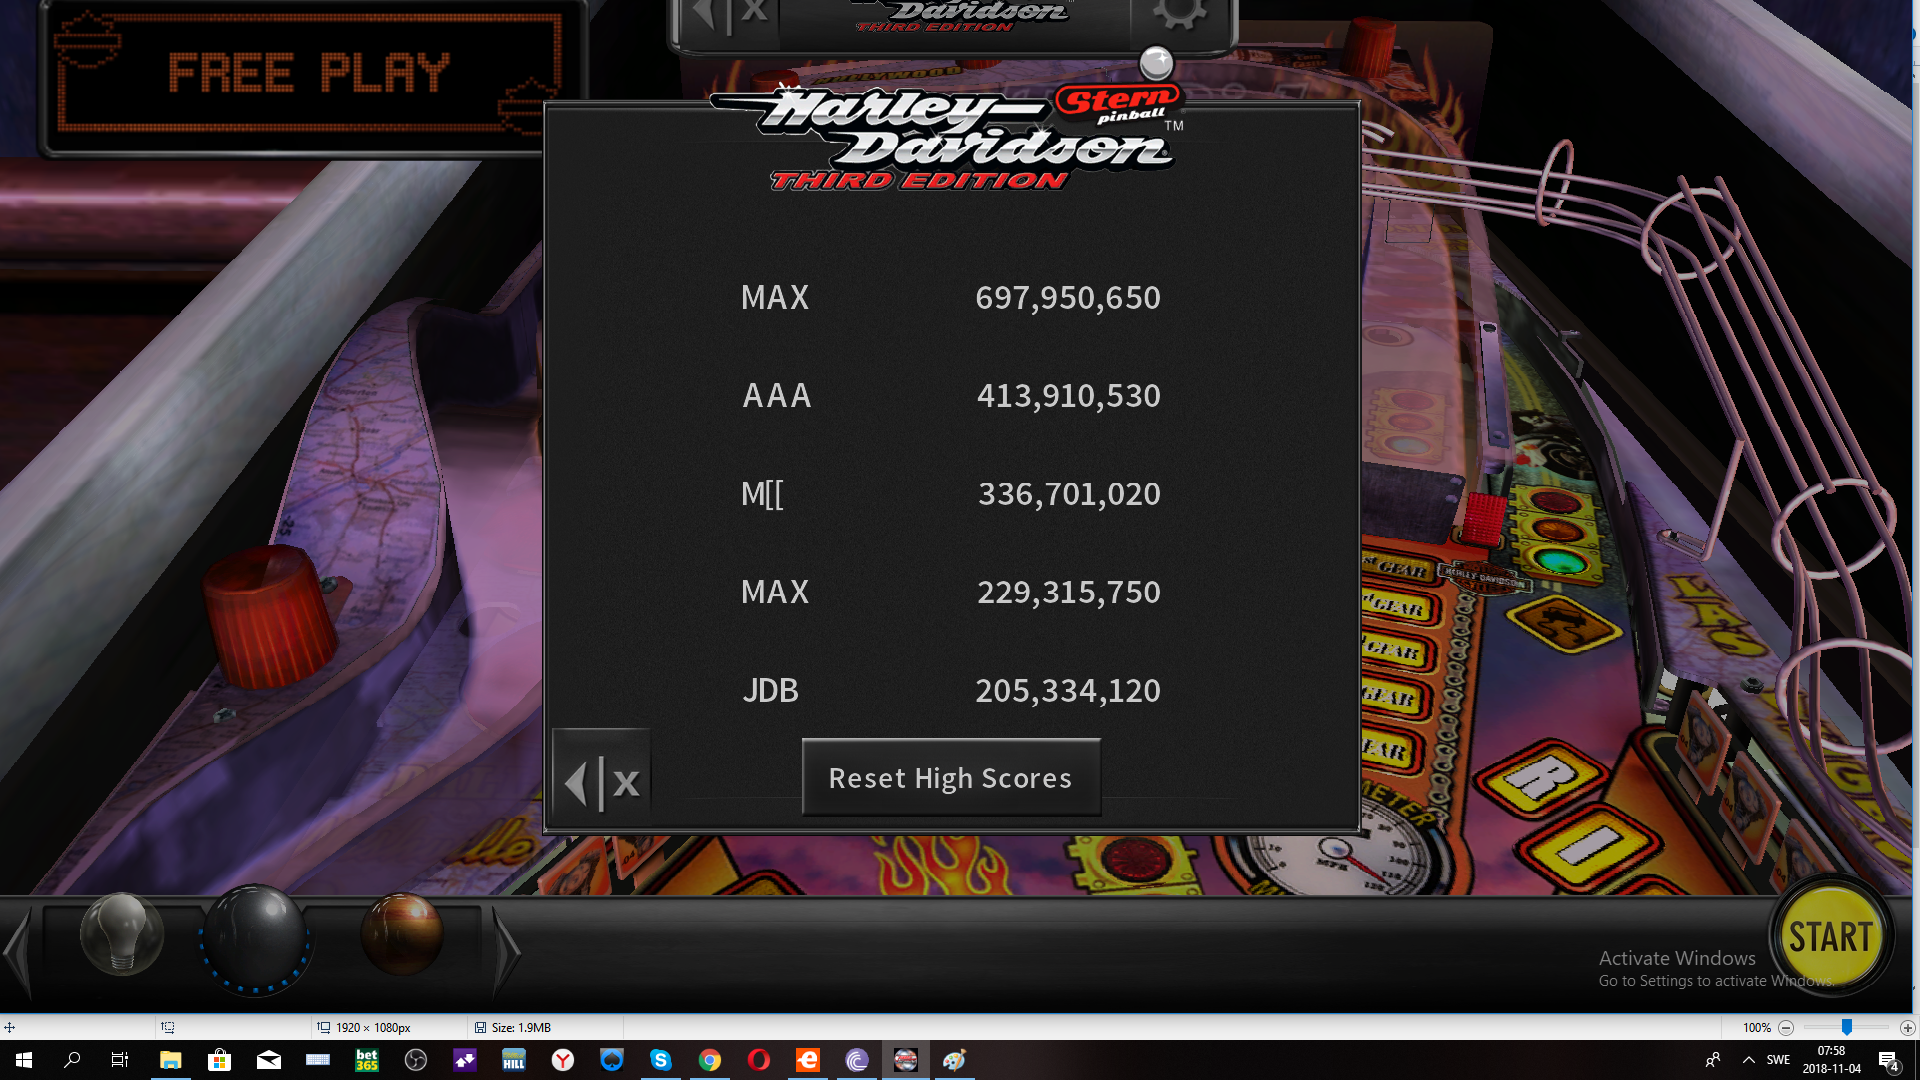 maxgreat: Pinball Arcade: Harley-Davidson (PC) 697,950,650 points on 2018-11-04 01:59:17